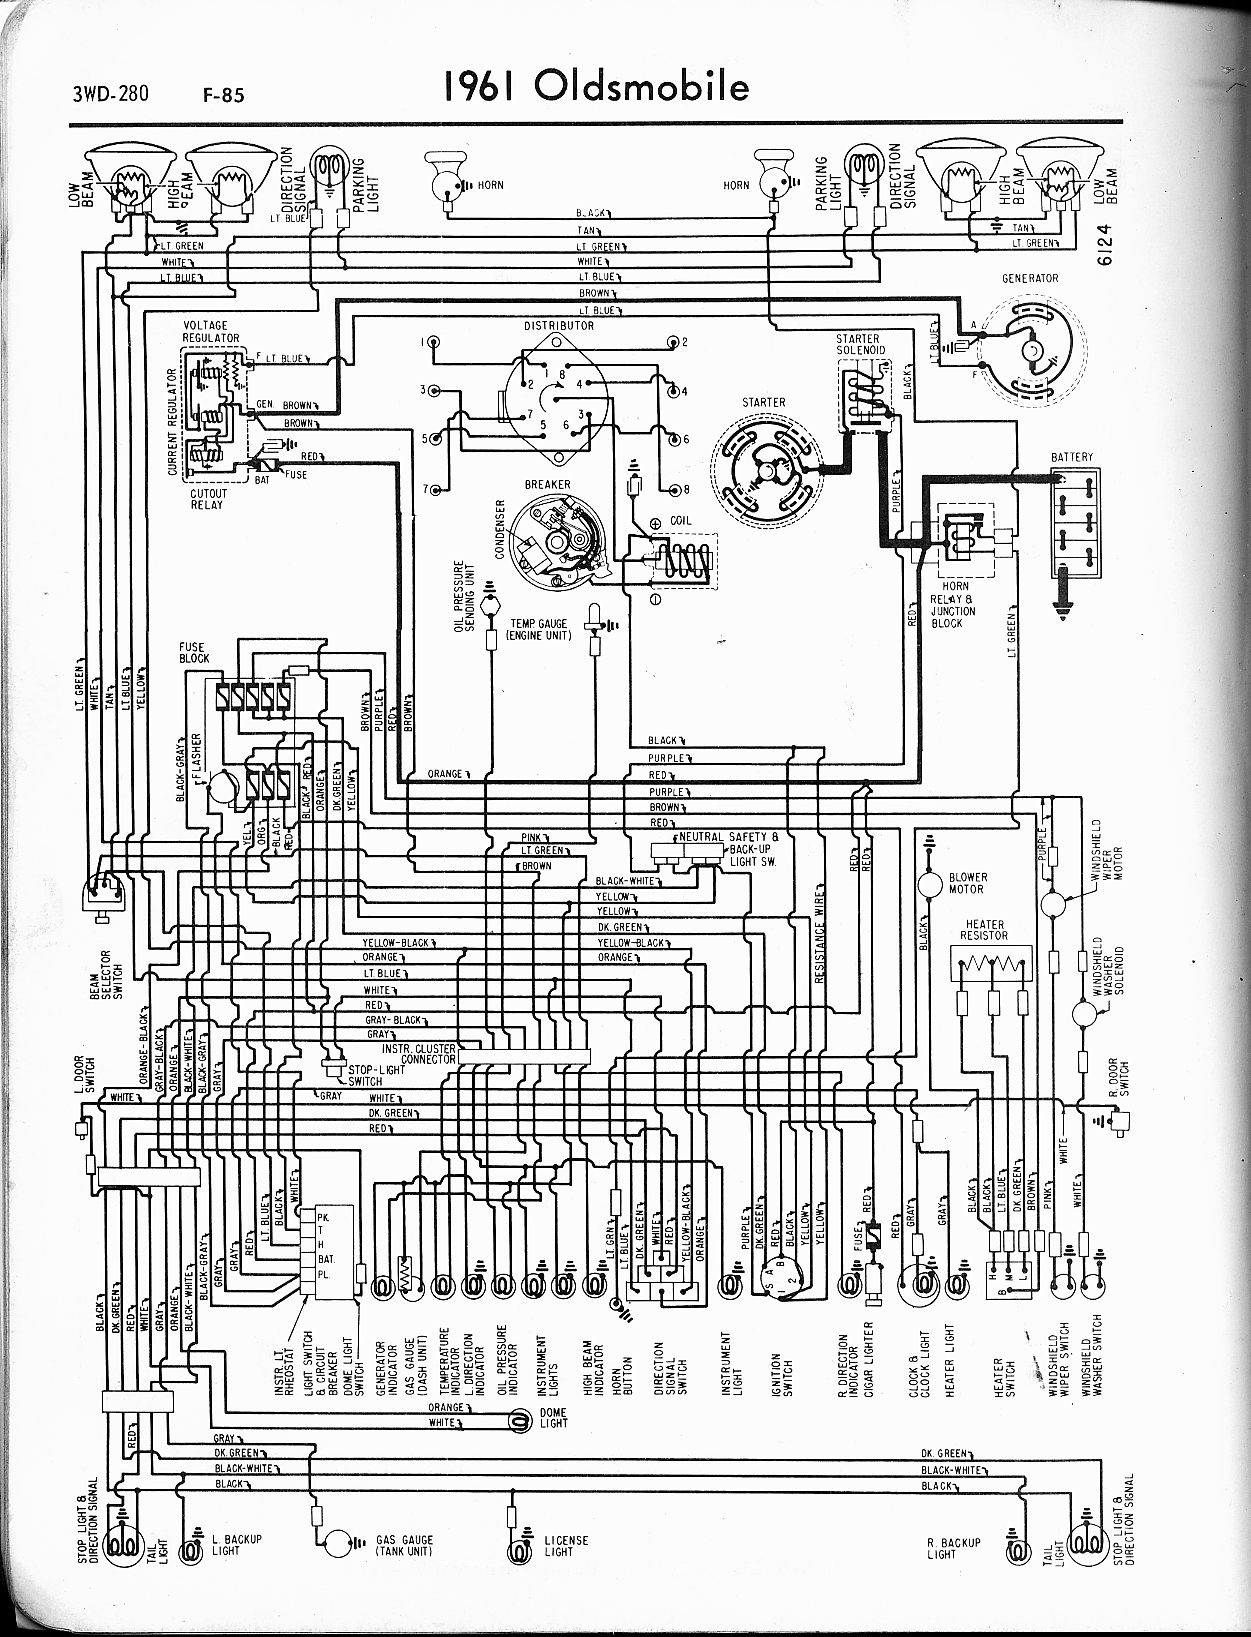 wiring diagram 94 oldsmobile cutlass supreme wiring diagram 1987 Cutlass Supreme Wiring Diagram 1987 oldsmobile cutlass supreme custom